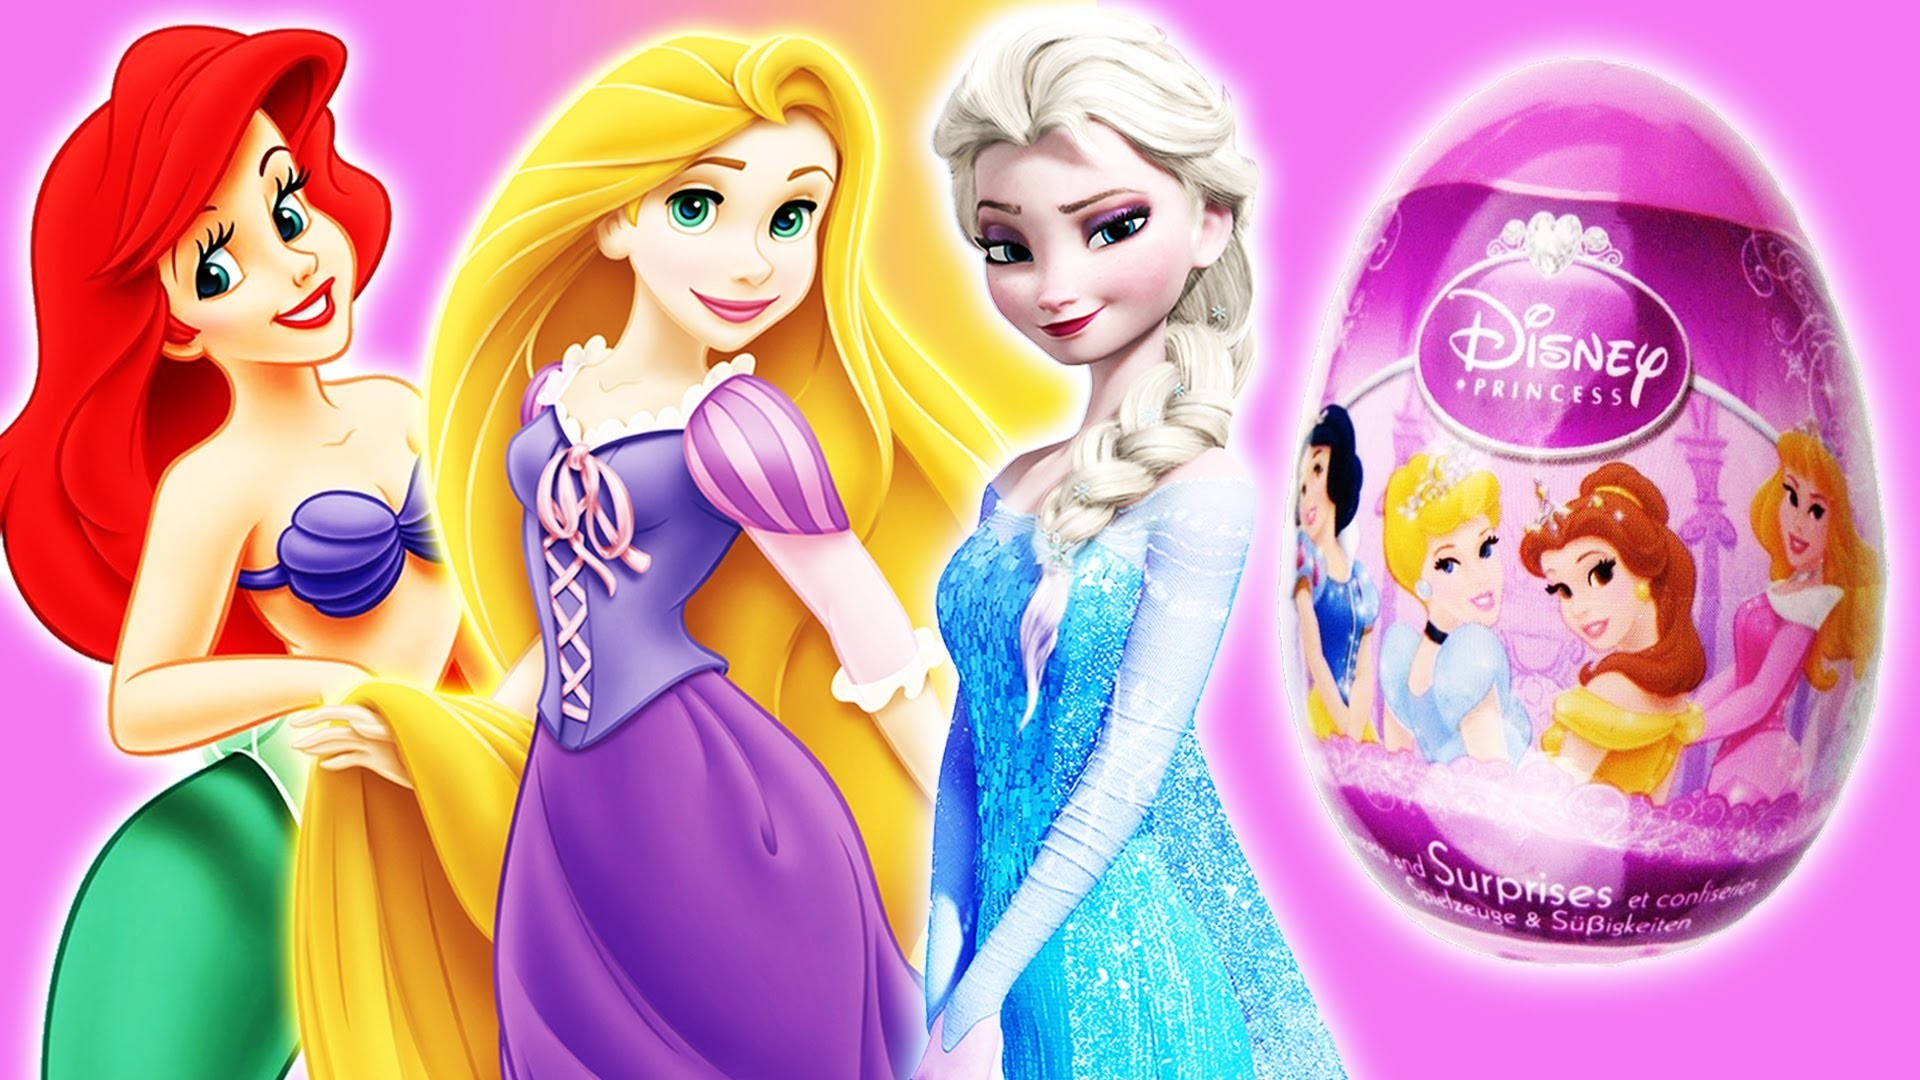 1920x1080 Cute Princess Wallpaper Frozen World Iphone 5c~ By In Kids Games